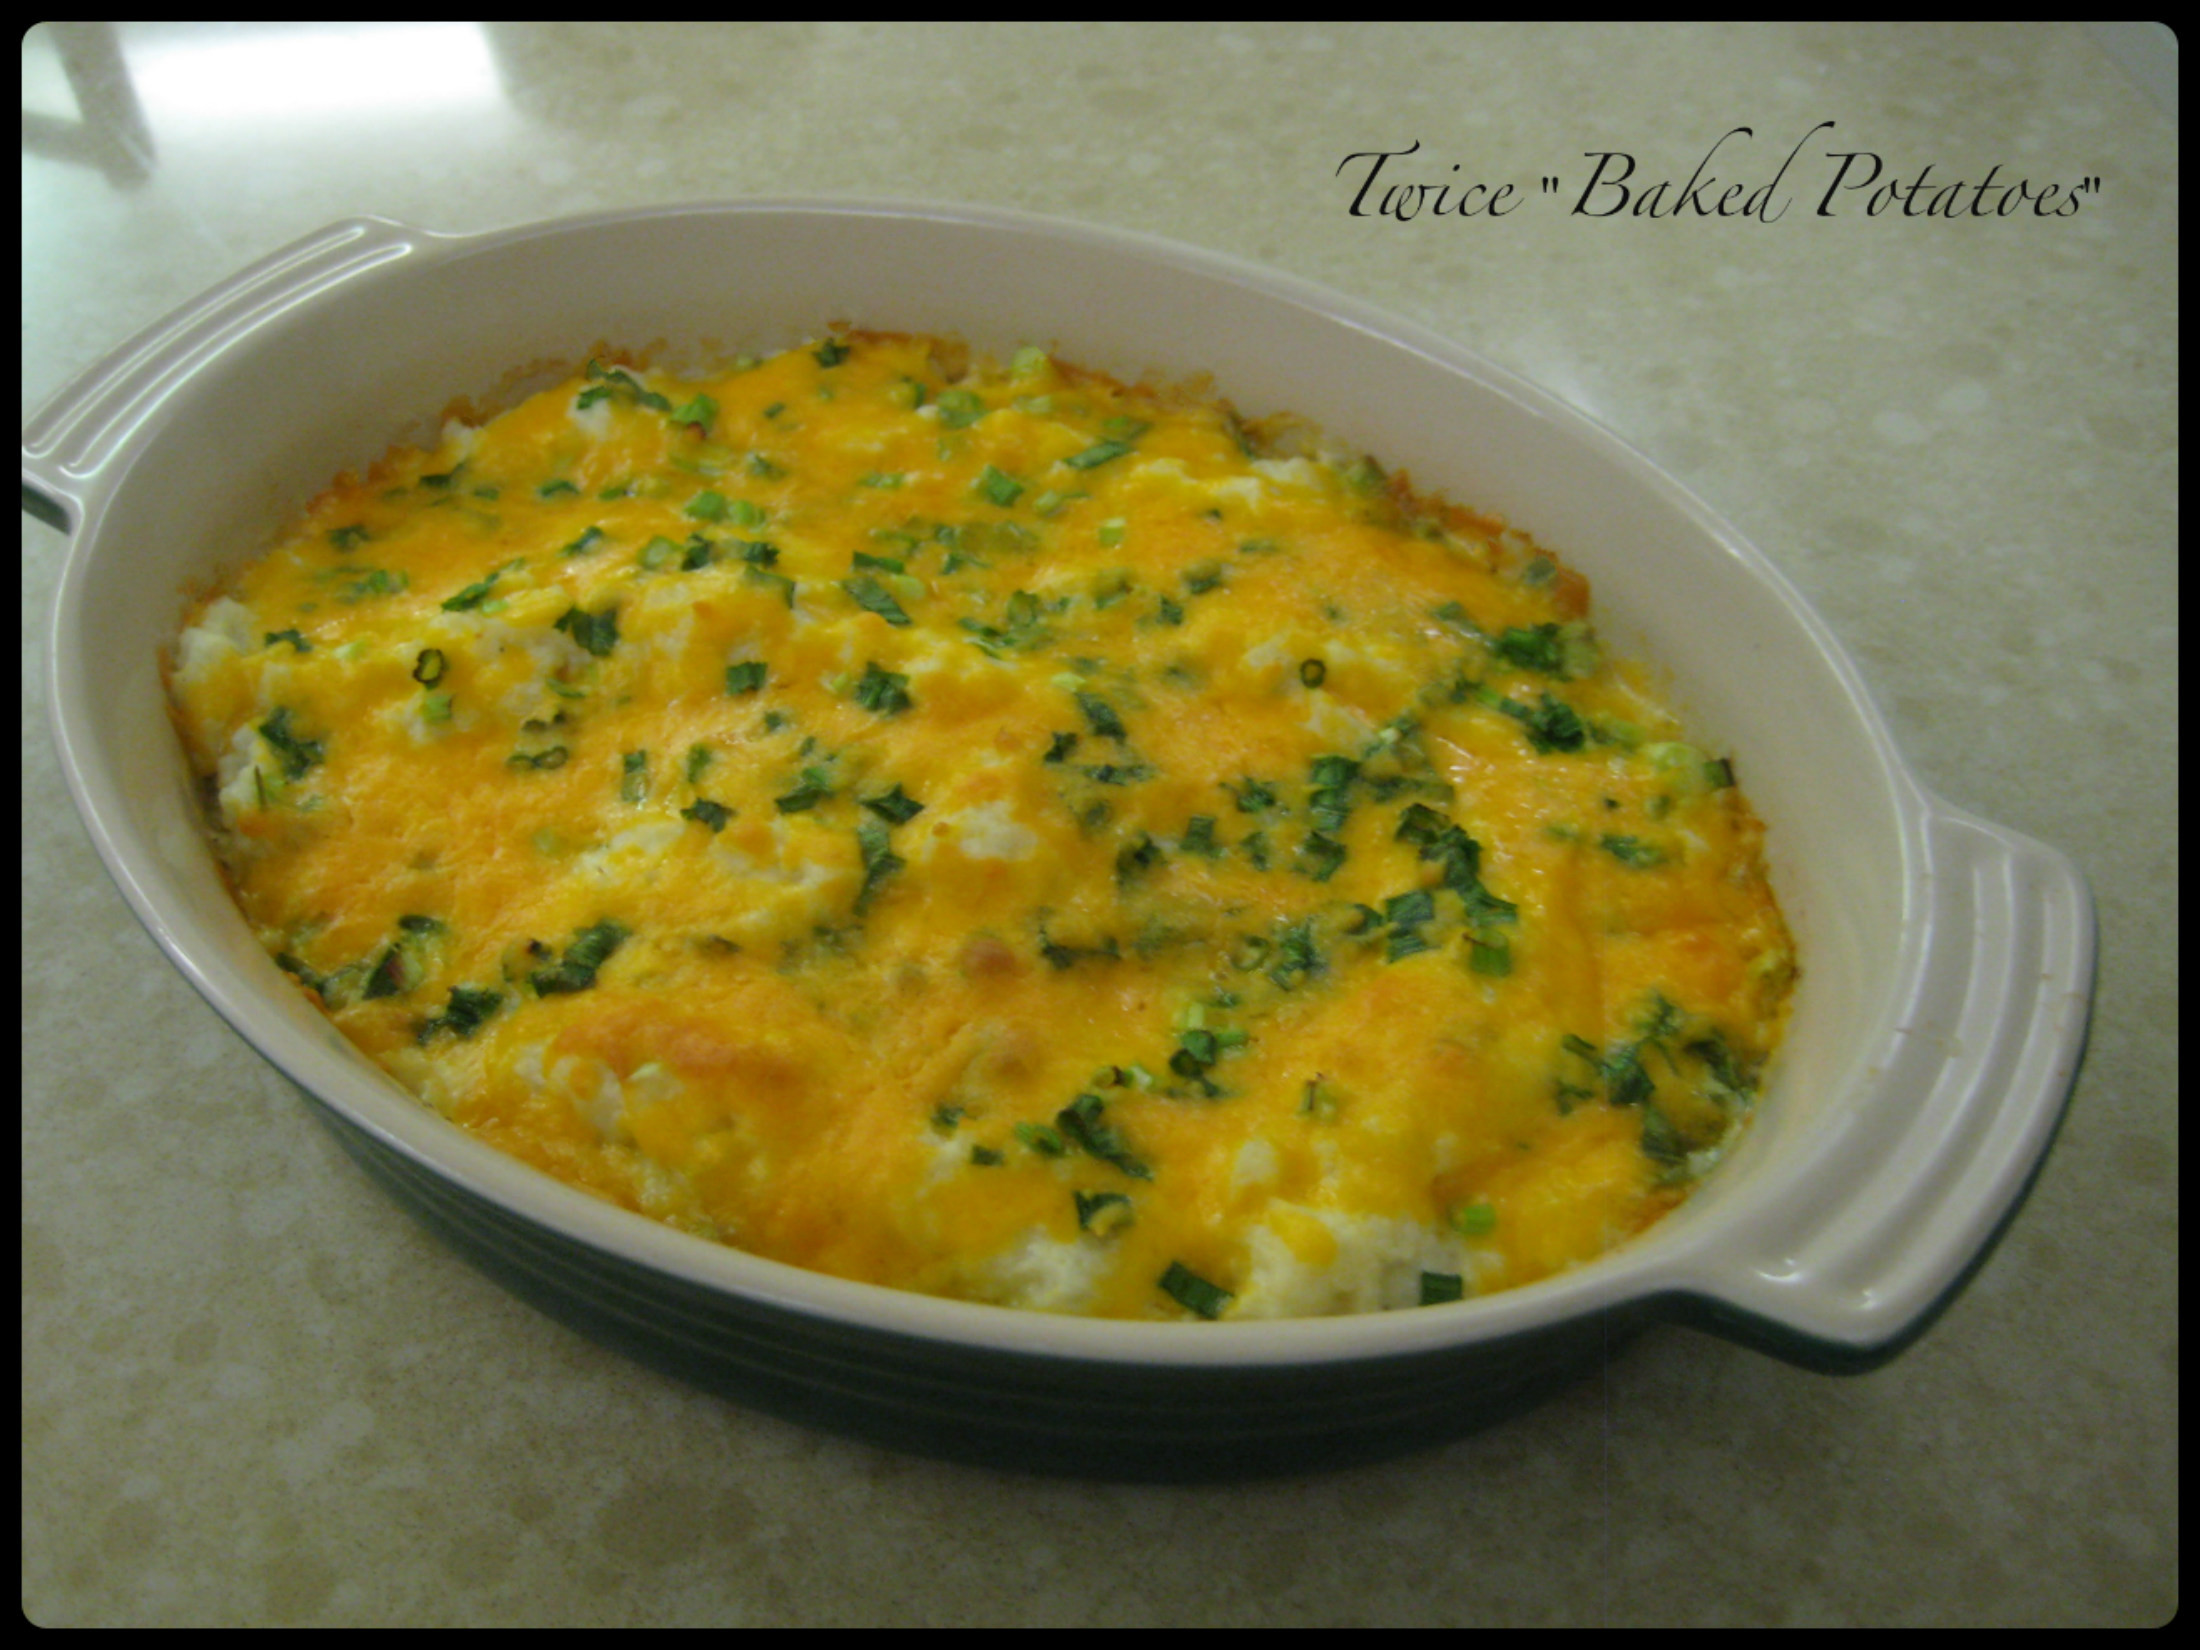 Carbs In A Baked Potato  24 7 Low Carb Diner Thanksgiving Sides Round Up